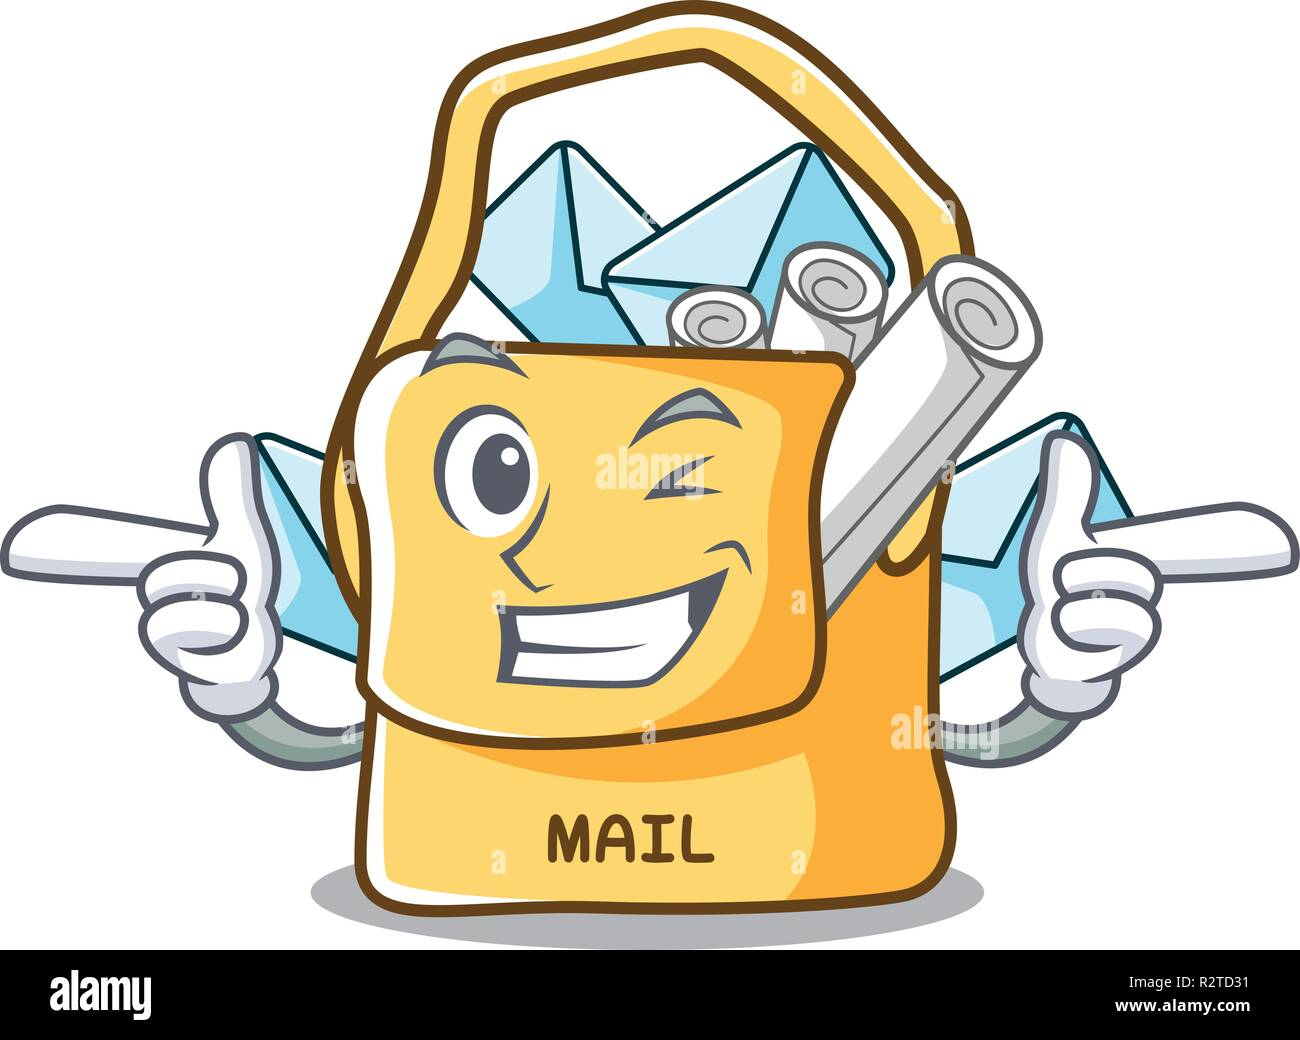 Wink the bag with shape mail cartoon - Stock Image